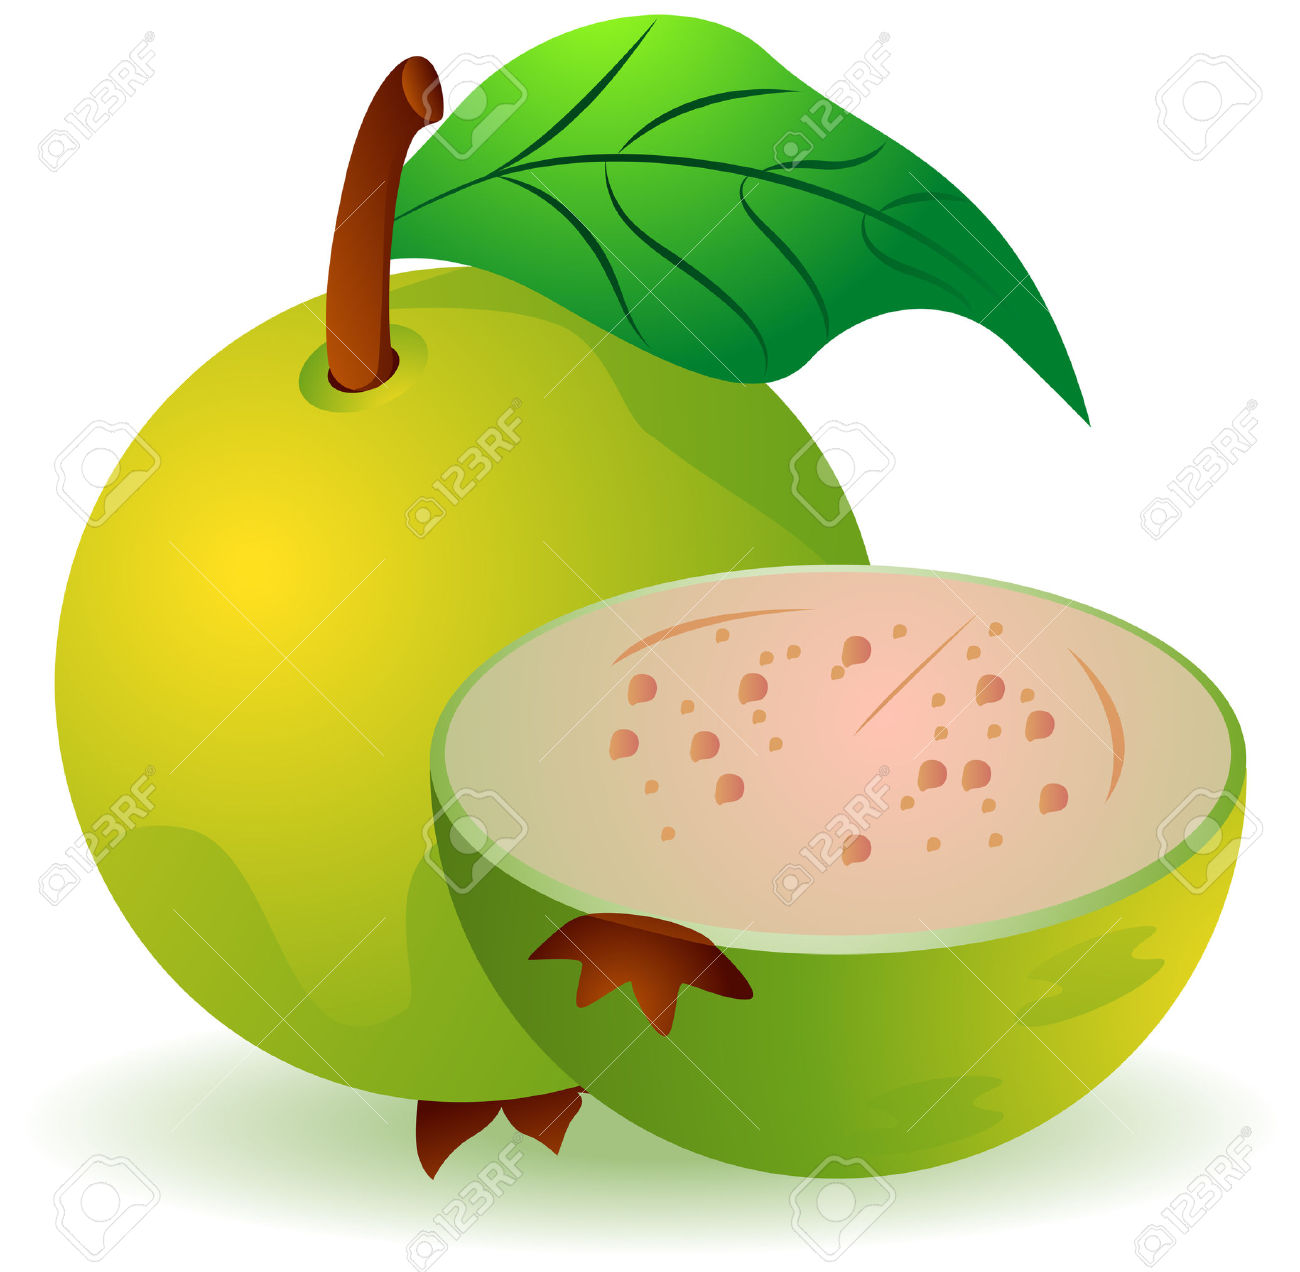 Guava Illustration With Clipping Path Royalty Free Cliparts.